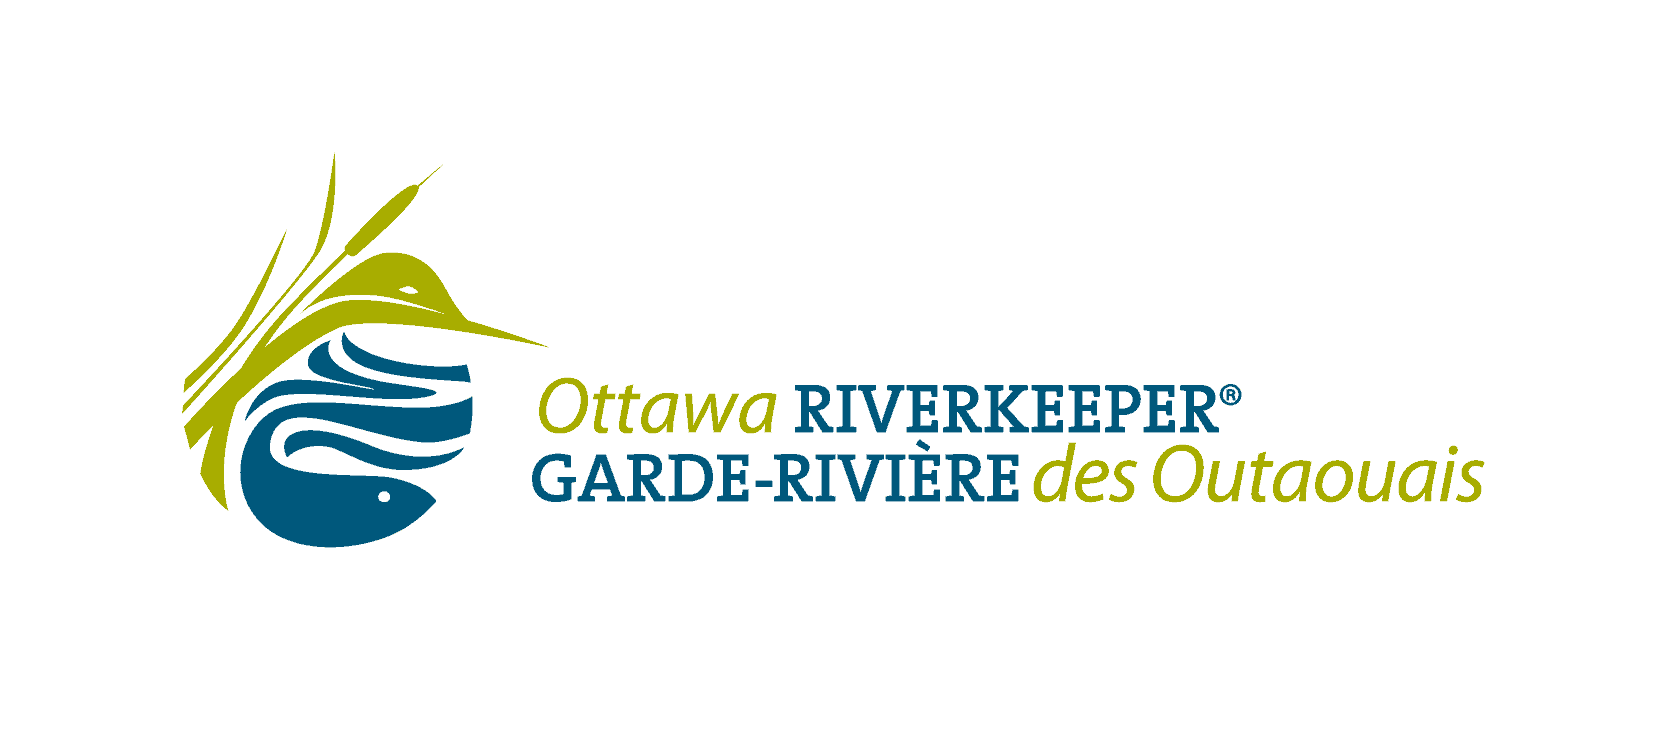 Ottawa Riverkeeper changes its name in French  